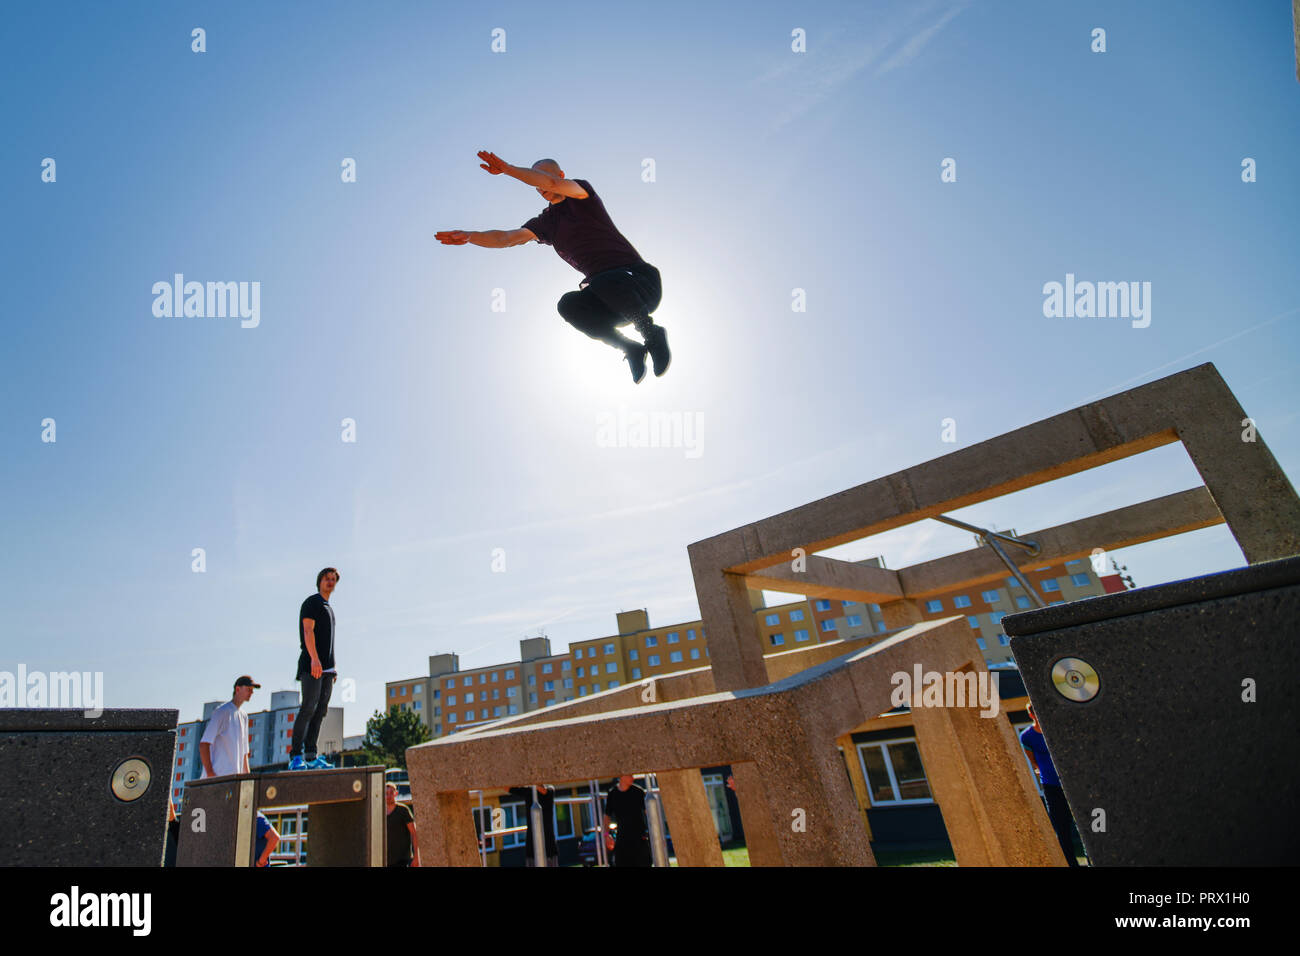 Pilsen, Czech Republic. 04th Oct, 2018. A traceur perform in a new parkour park (playground) in Pilsen, Czech Republic, on October 4, 2018. The 600-square-metres park is one of the largest in Europe. Credit: Miroslav Chaloupka/CTK Photo/Alamy Live News - Stock Image